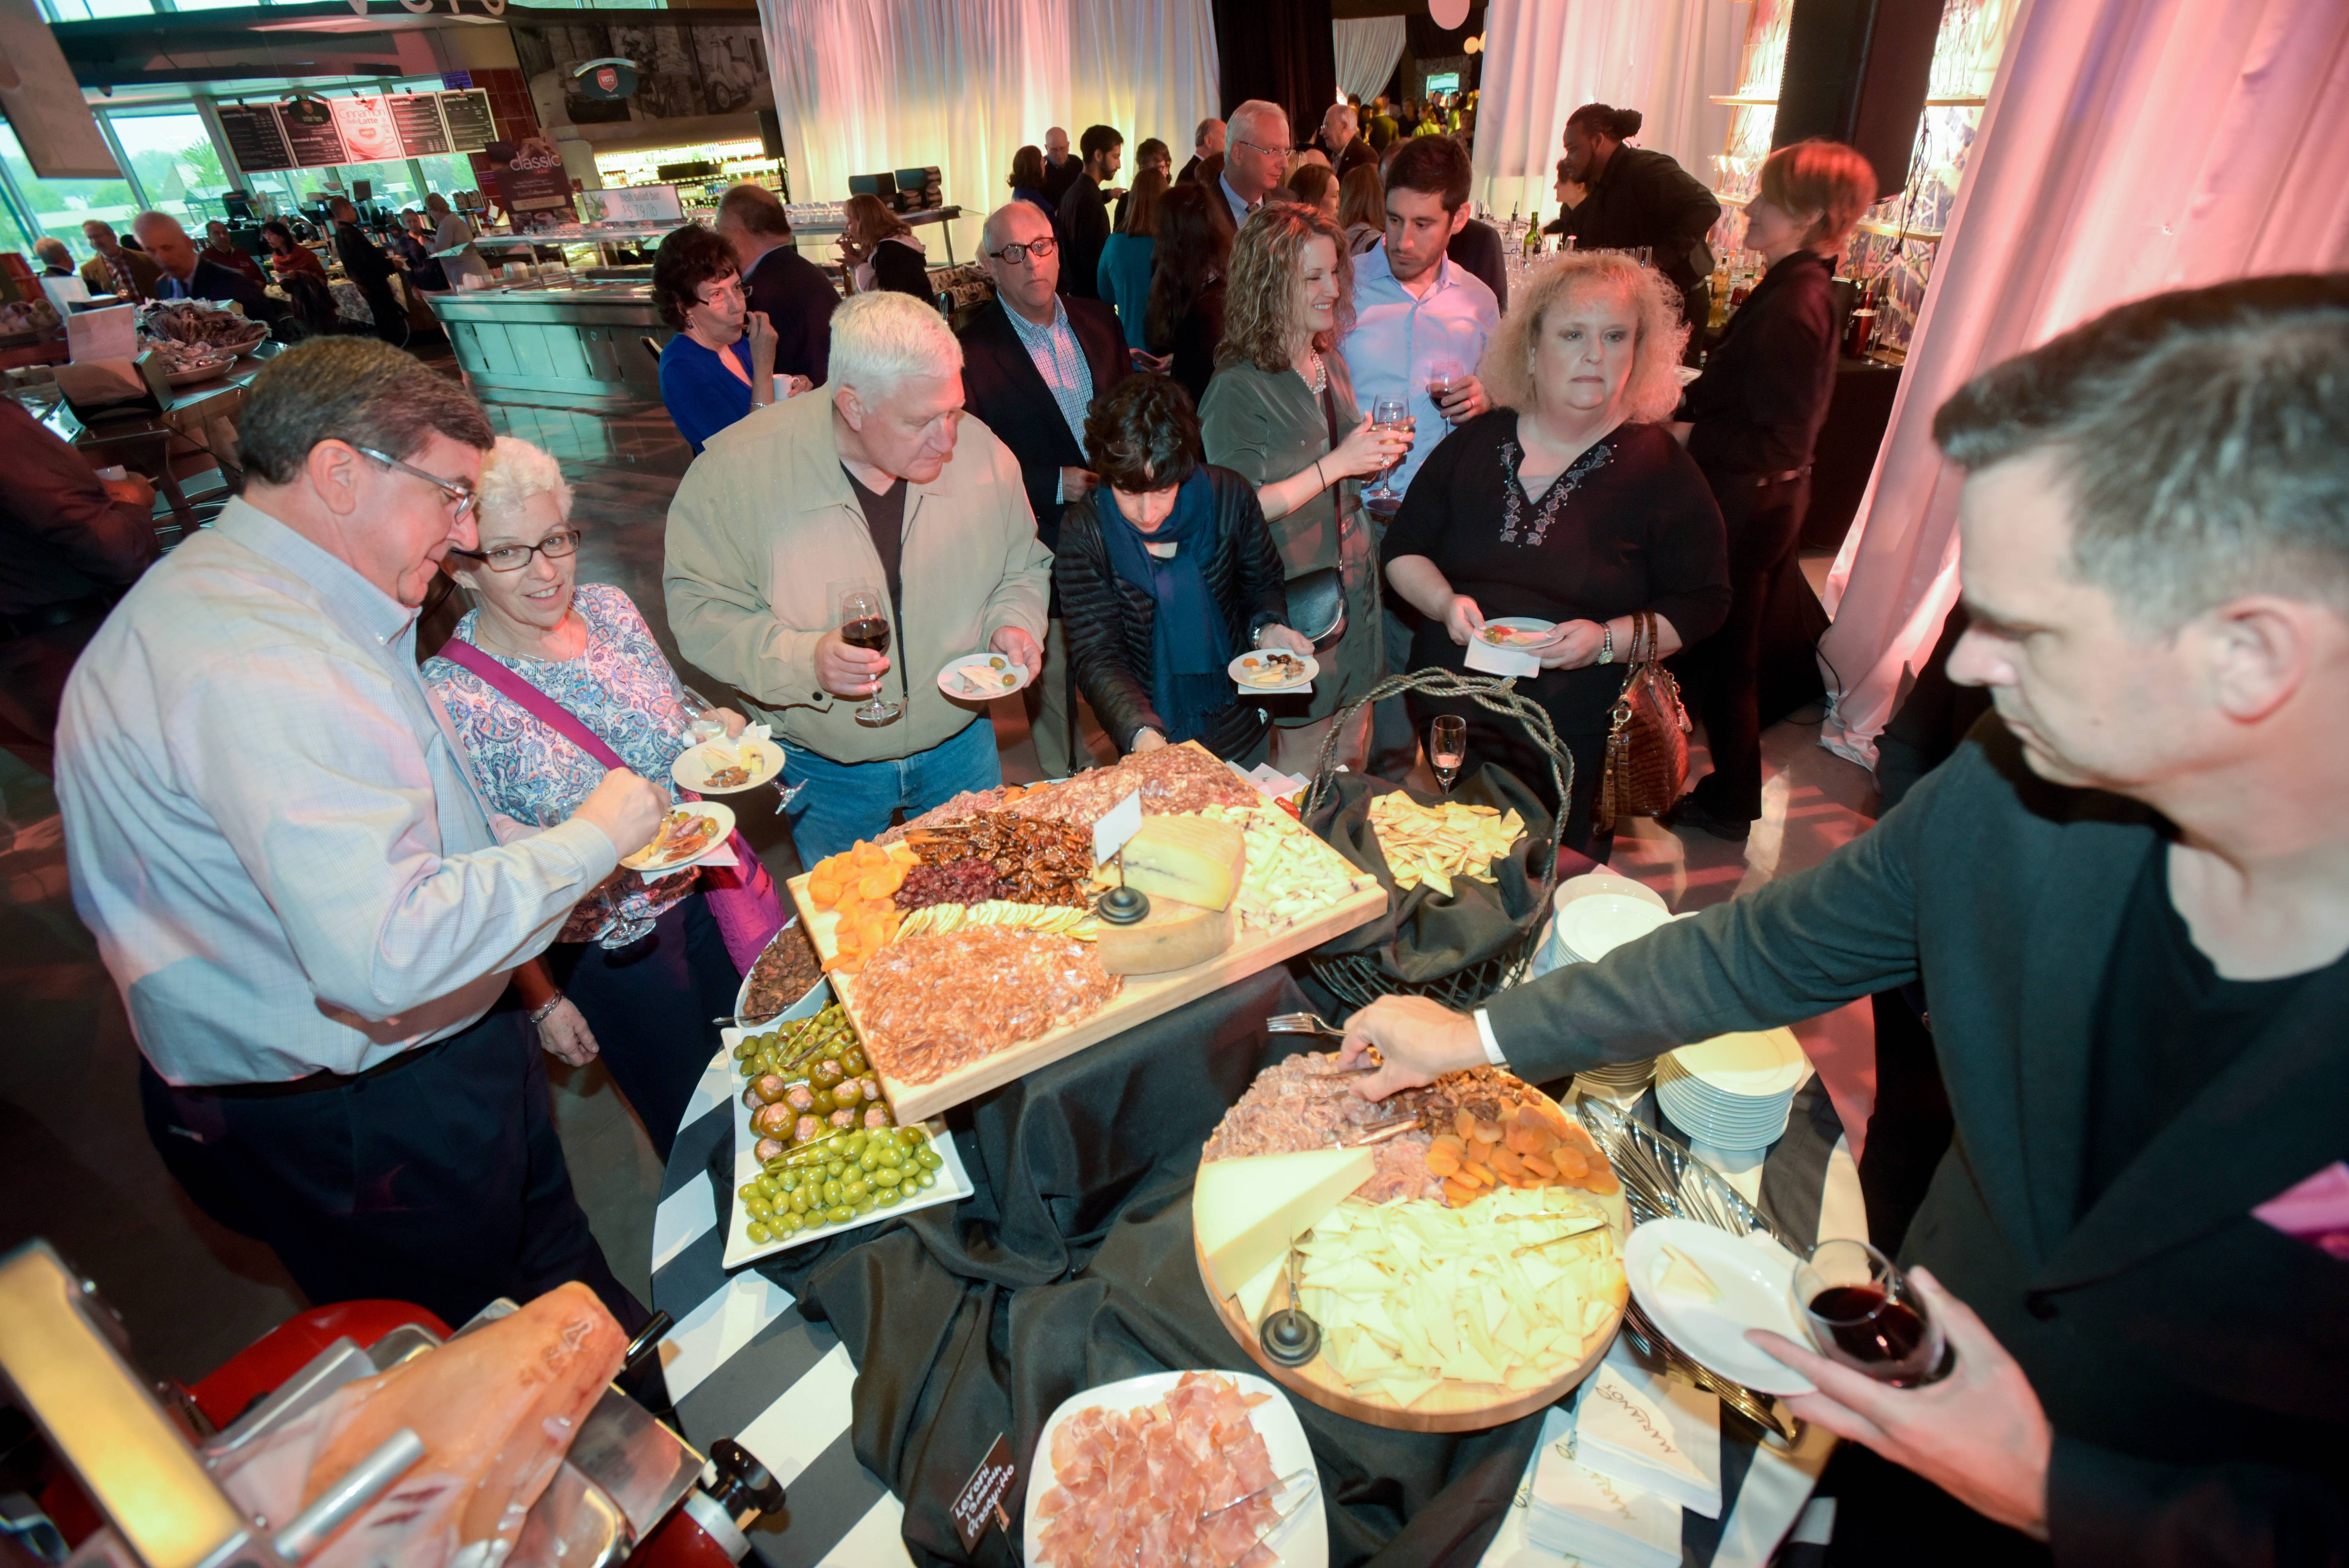 Guests at a grand opening reception Monday at a new Mariano's in Naperville sample a deli spread of meats, cheeses and olives. The store is the chain's 37th since it launched in 2010 in Arlington Heights.